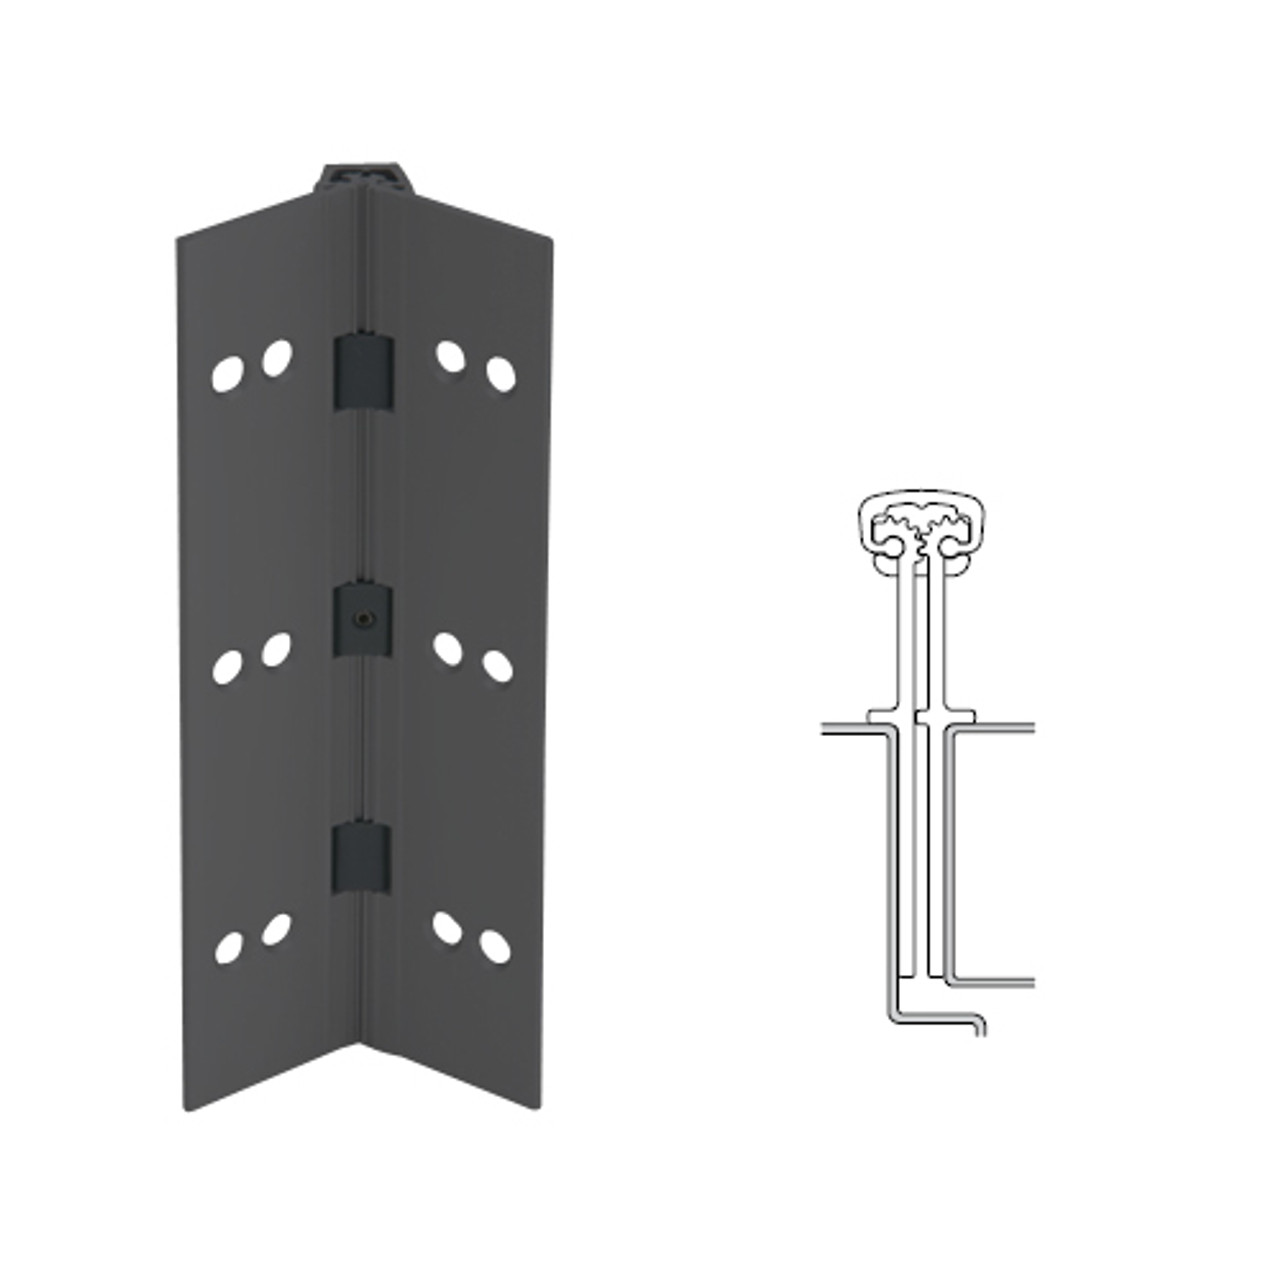 040XY-315AN-95-SECWDWD IVES Full Mortise Continuous Geared Hinges with Security Screws - Hex Pin Drive in Anodized Black